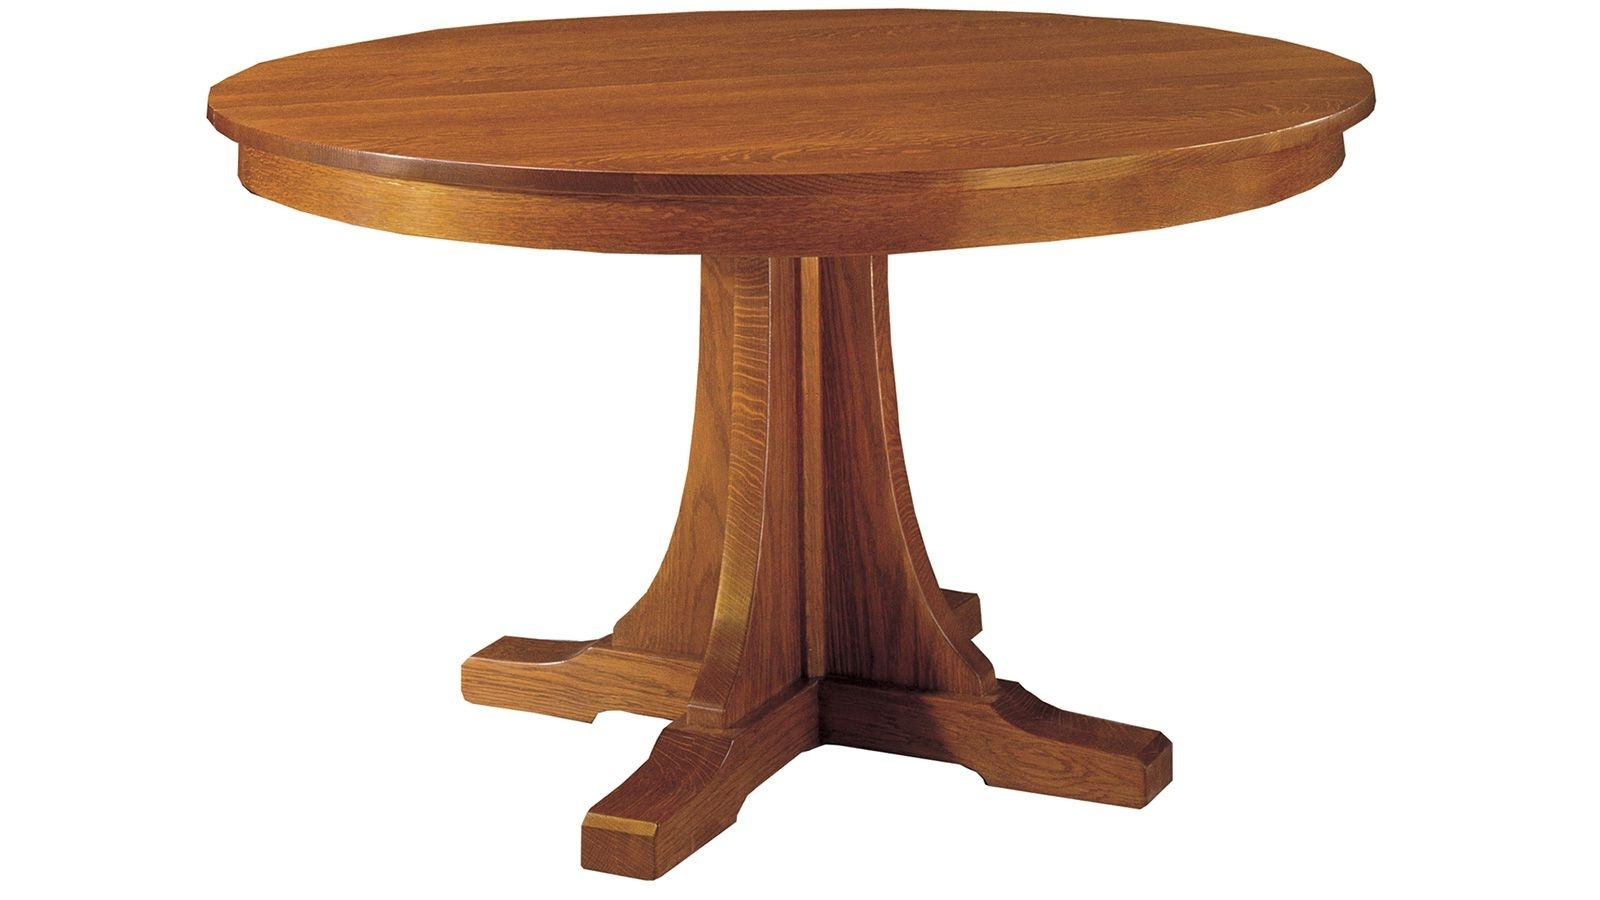 Craftsman Round Dining Tables For Well Known Made In America Out Of Quartersawn White Oak, This Lovely Dining (View 4 of 25)